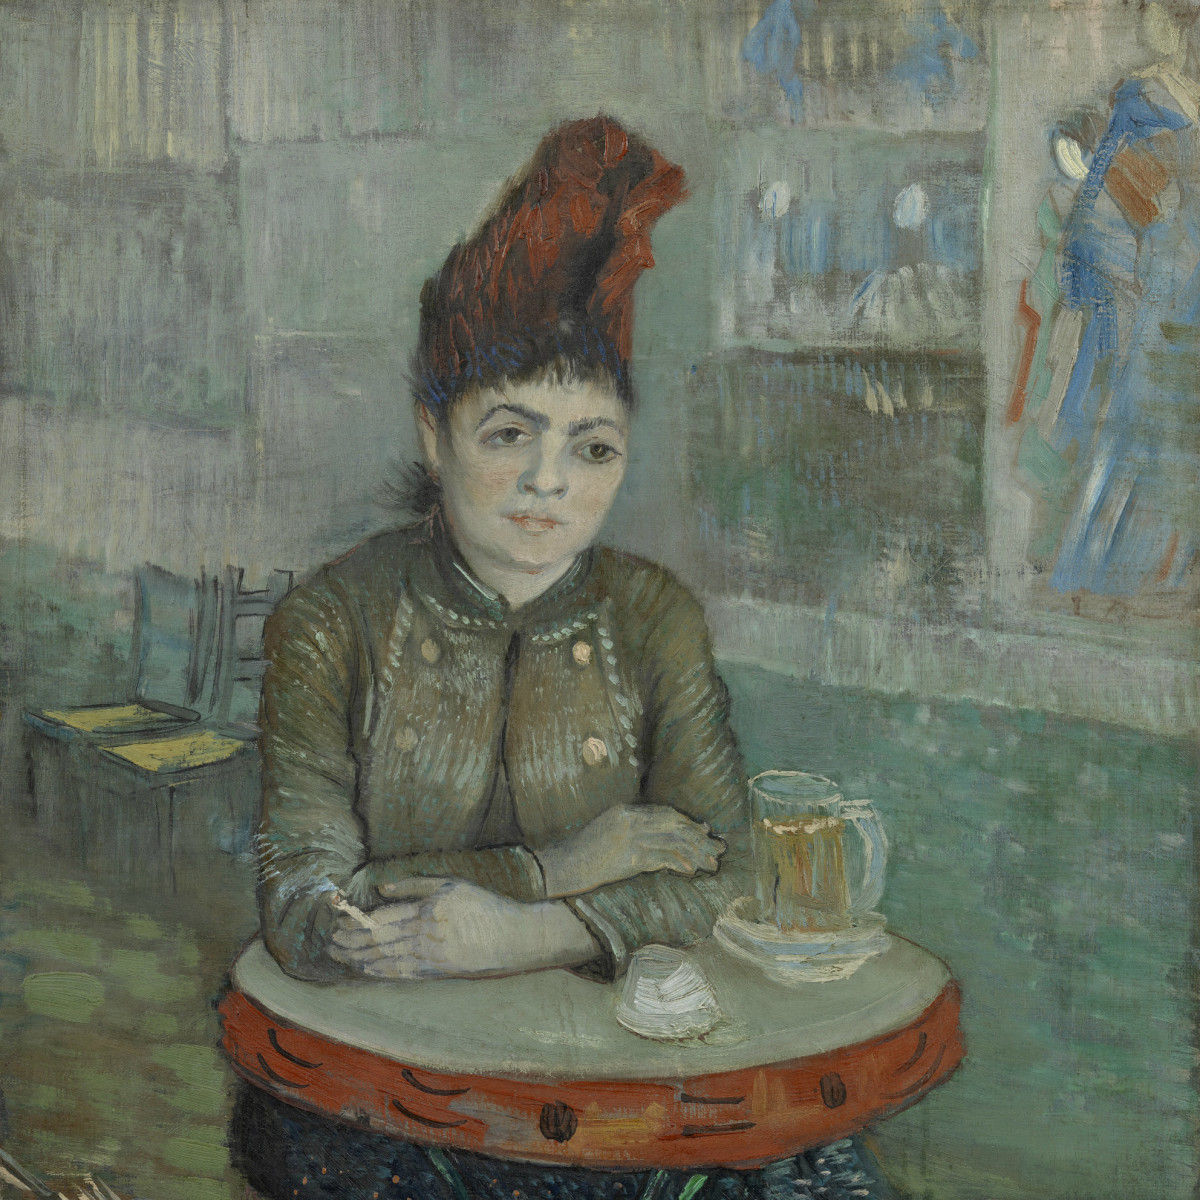 Vincent Van Gogh MFAH In the Cafe